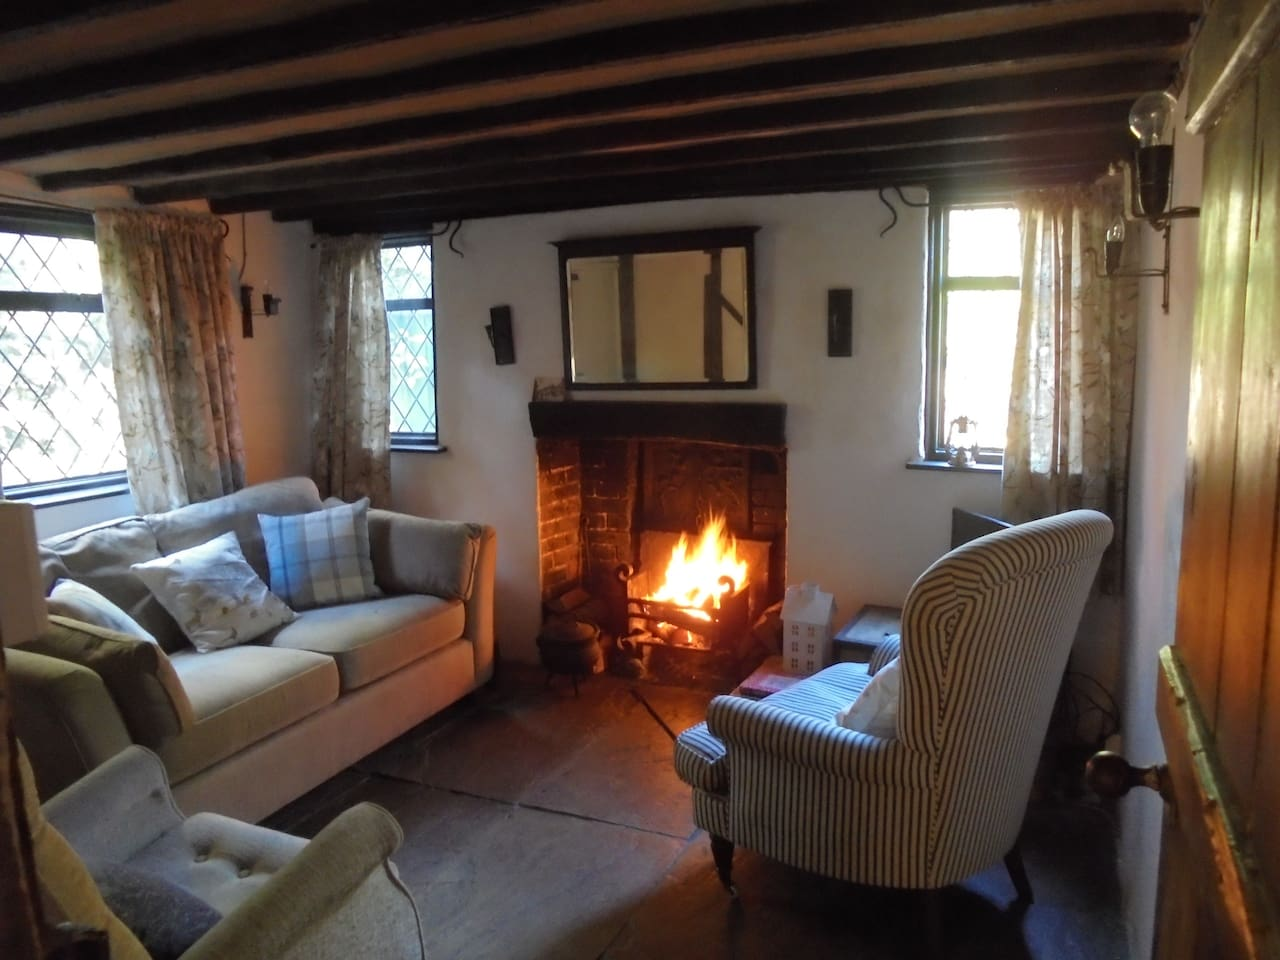 Cosy sitting room with open fireplace, flag stone floors and lime washed walls